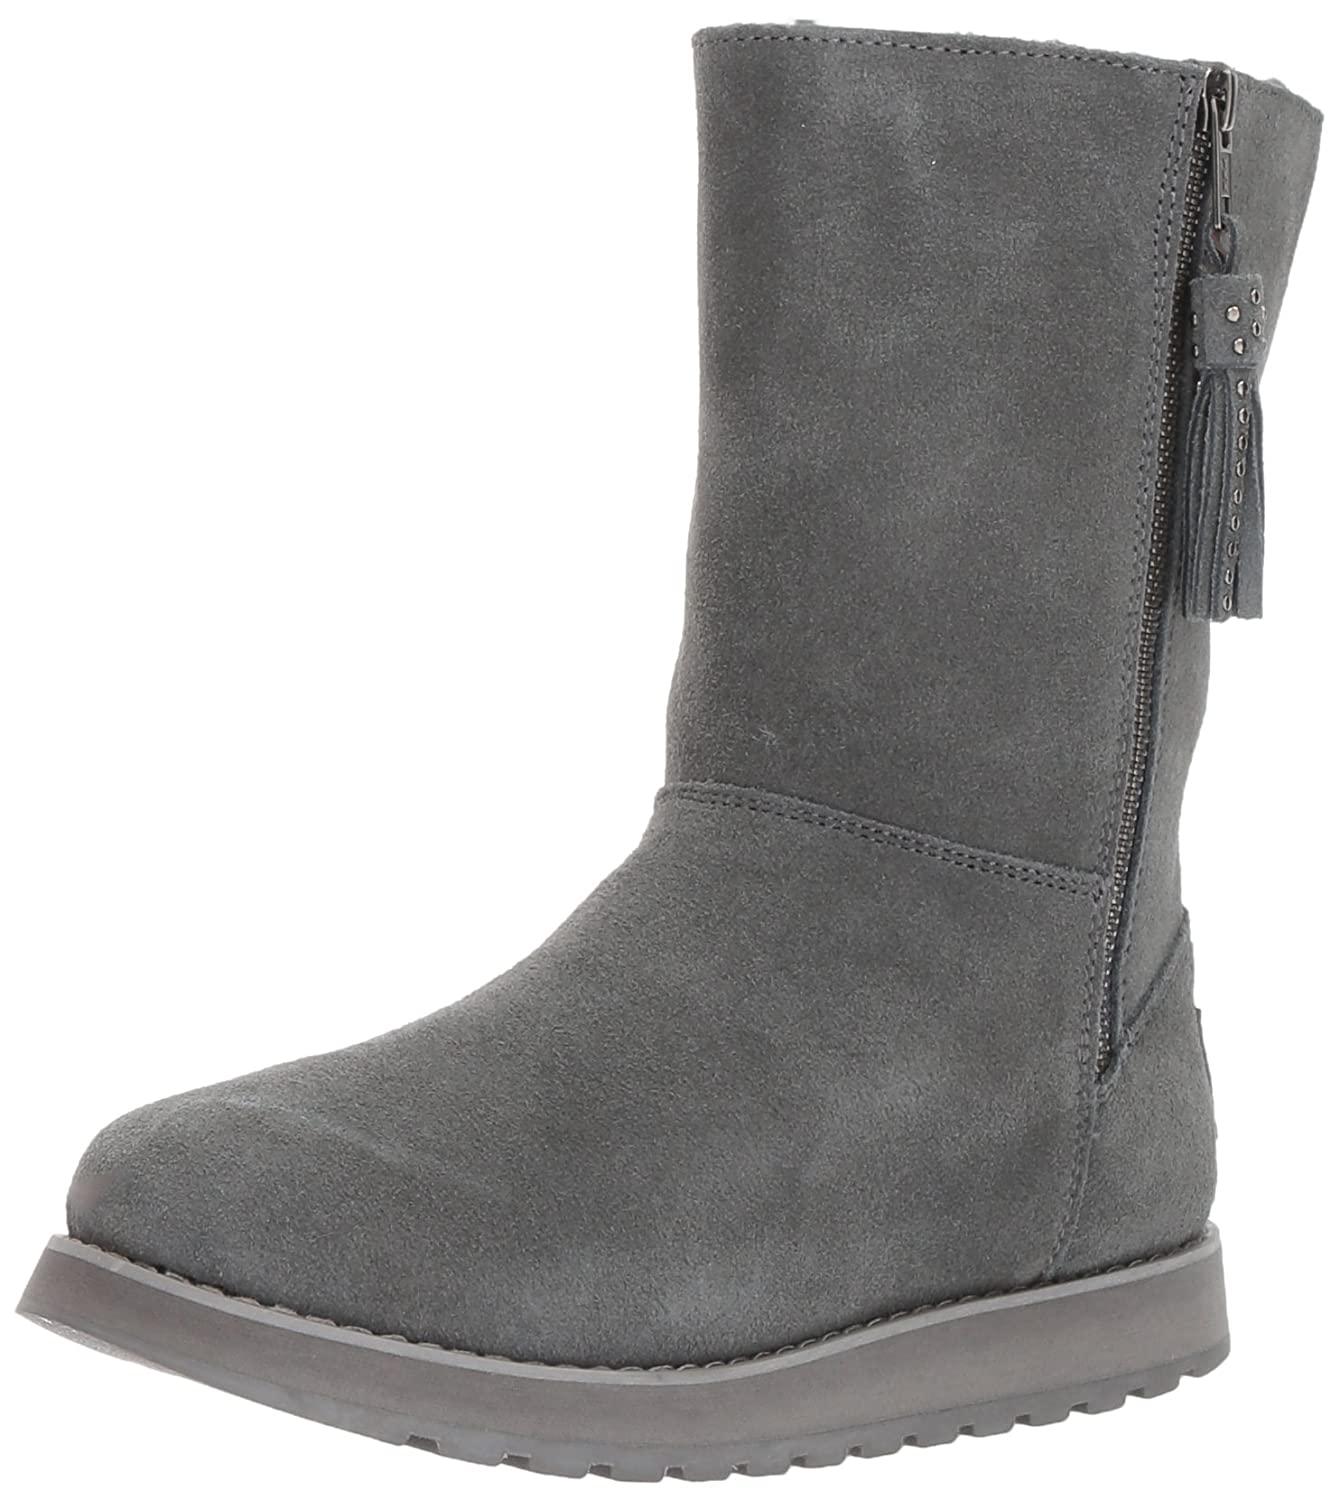 Skechers Women's Keepsakes-Mid Winter Boot, Charcoal, 6.5 M US